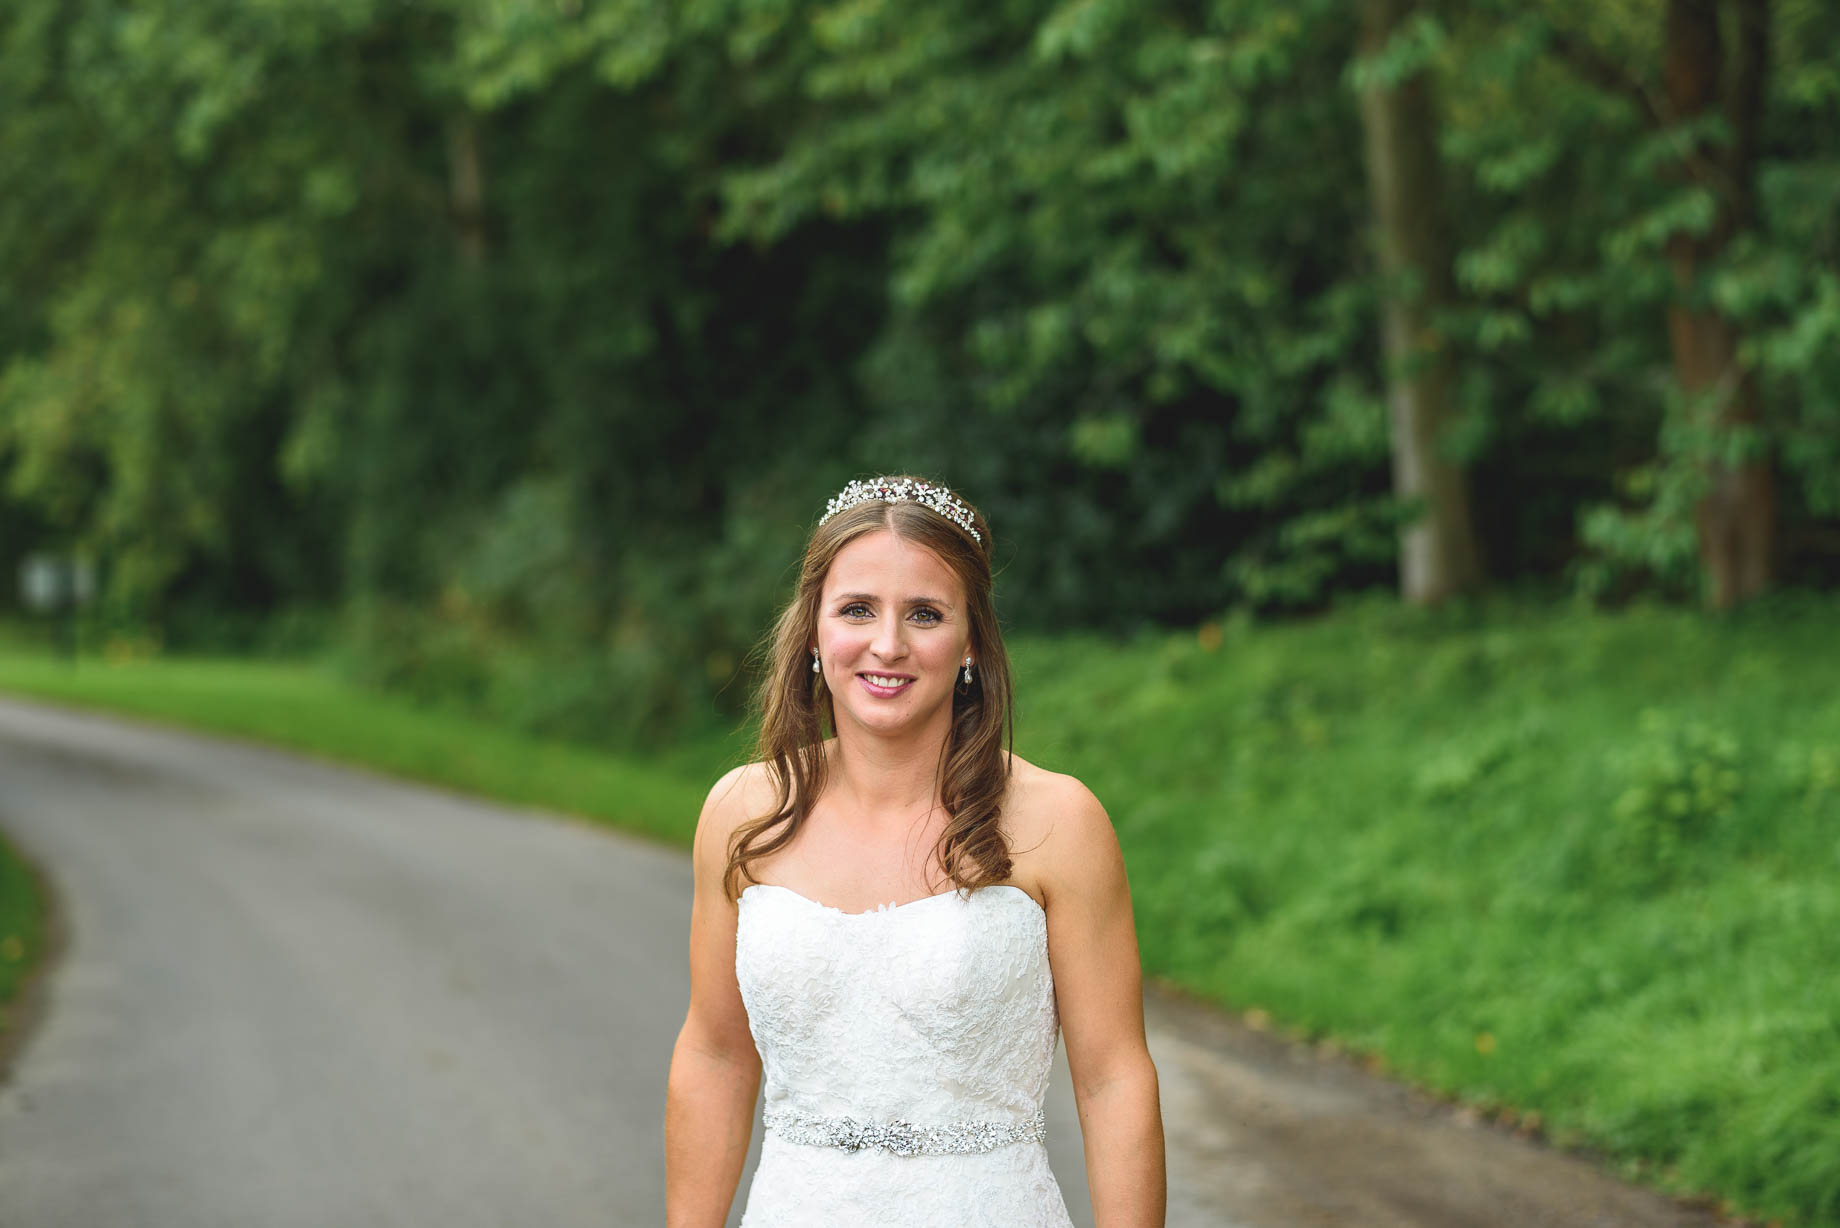 Gate Street Barn wedding photography - Guy Collier - Claire and Andy (111 of 192)